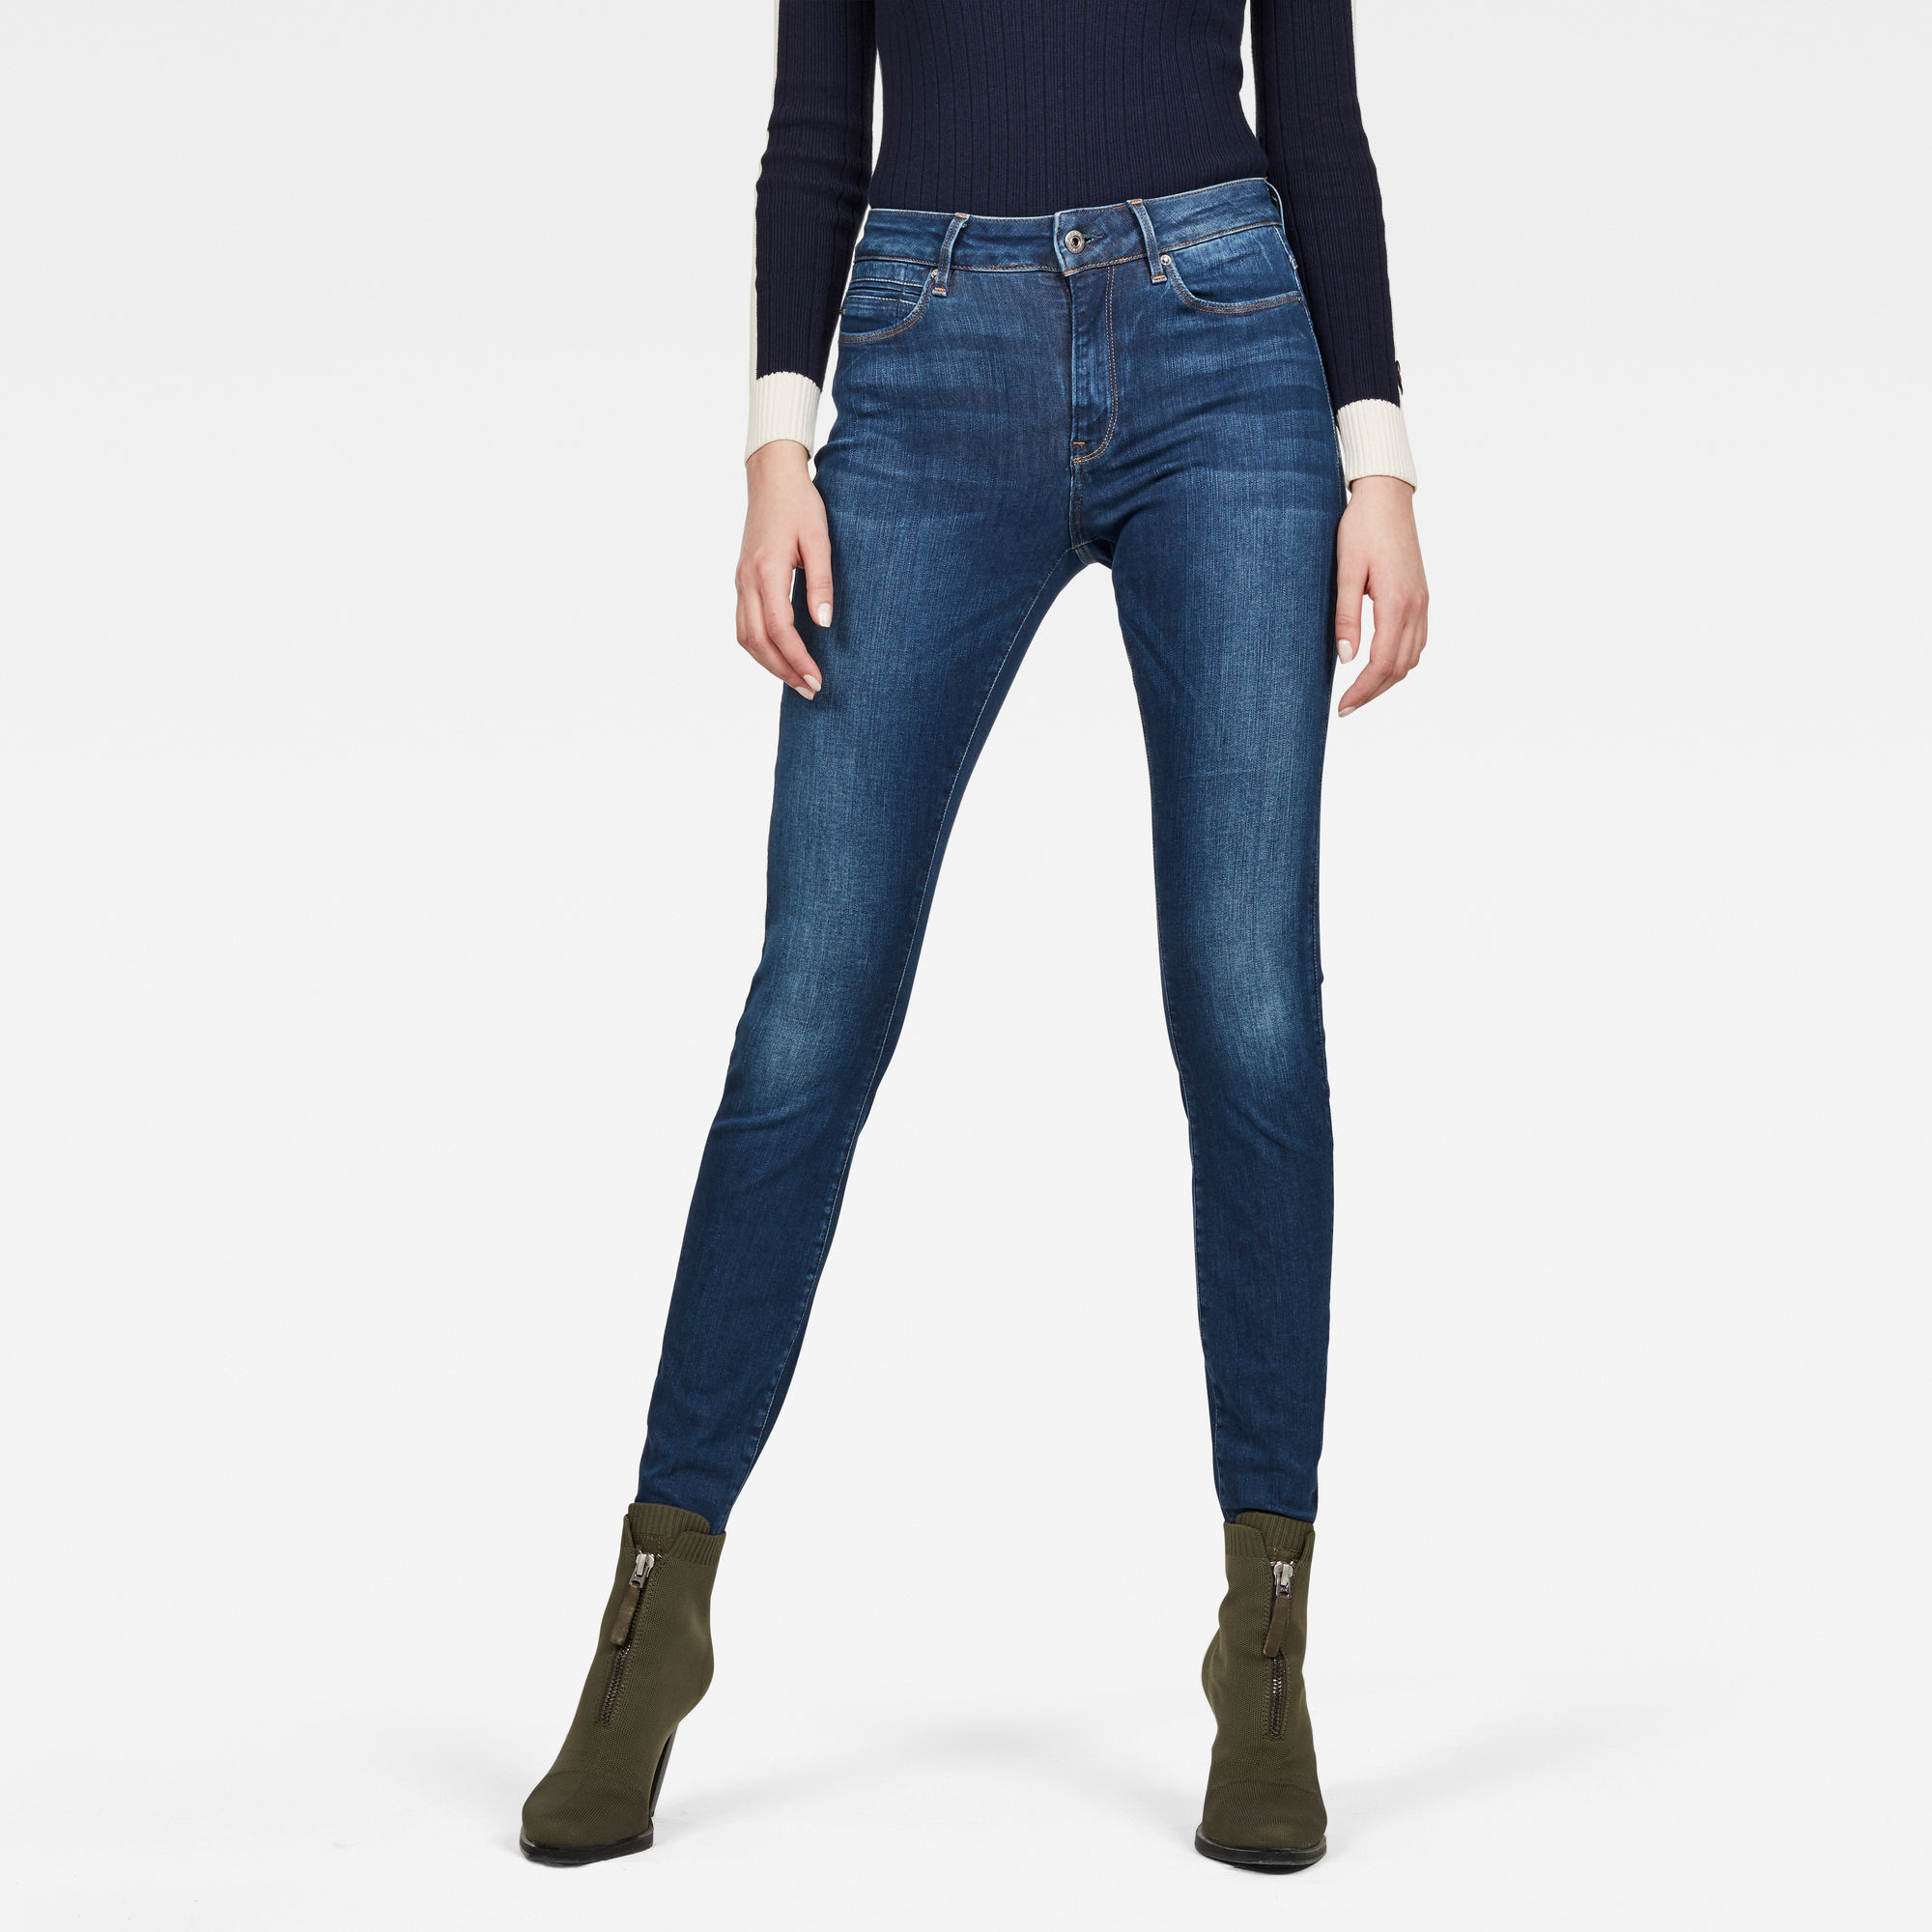 Image of G Star Raw G-Star Shape High Waist Super Skinny Jeans